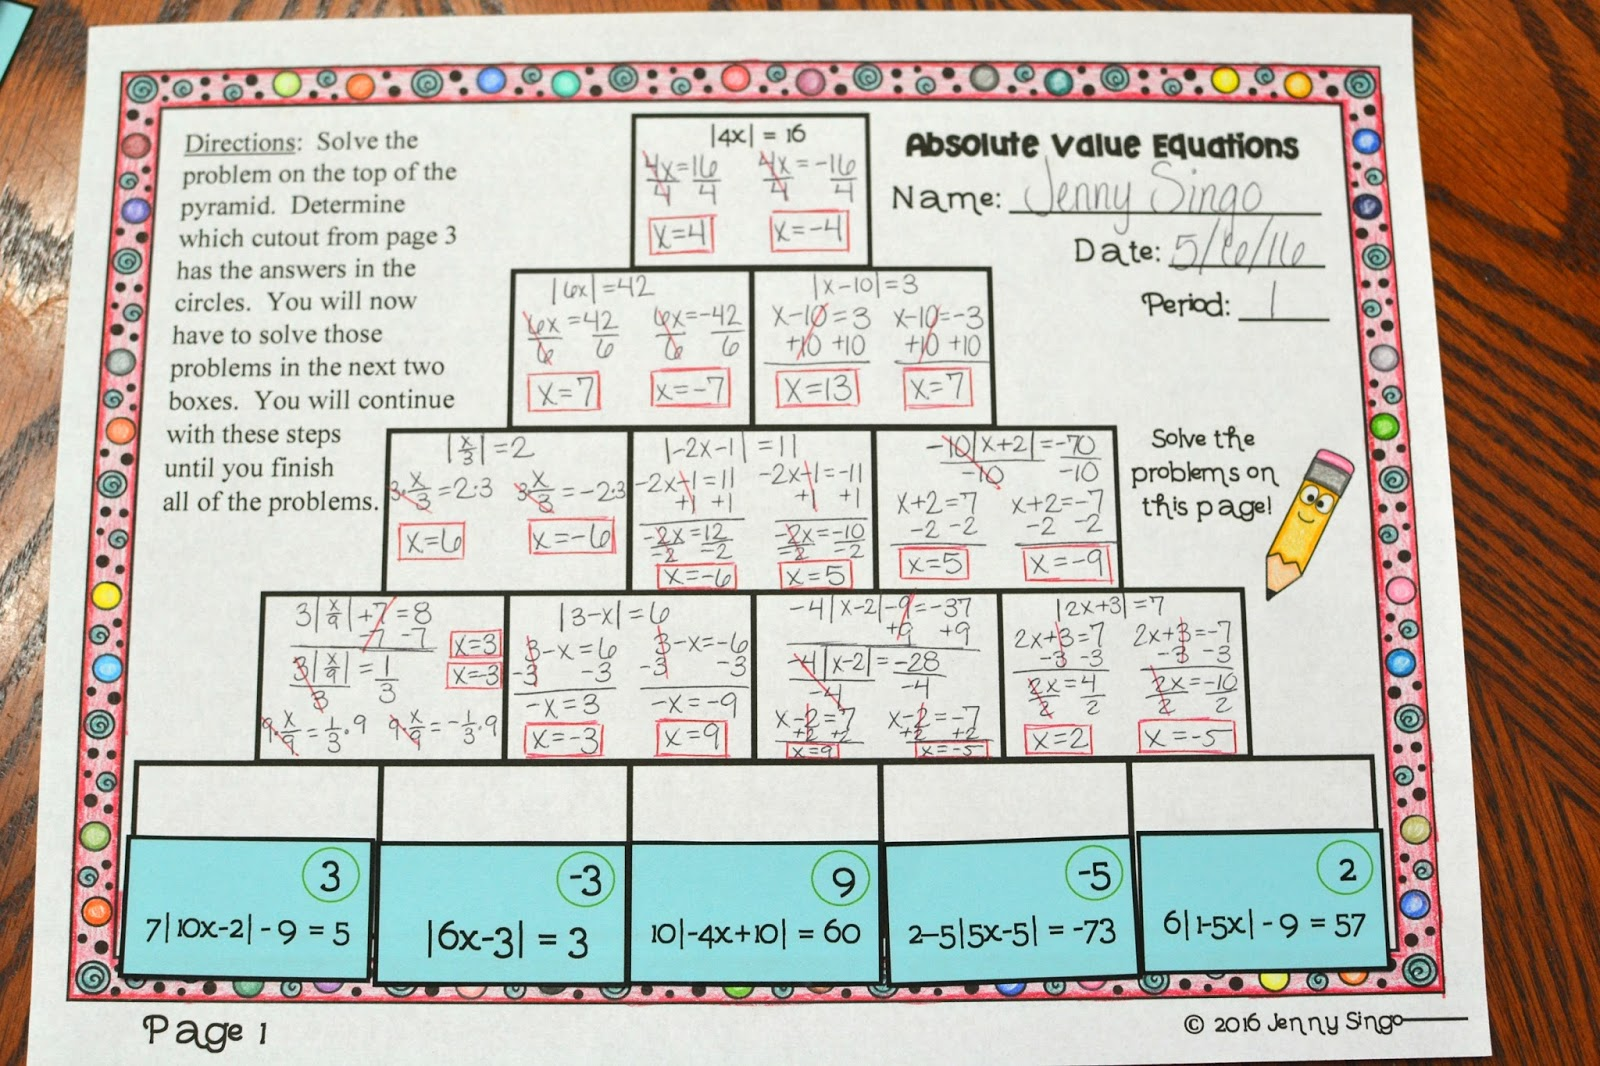 Absolute Value Equations Activity